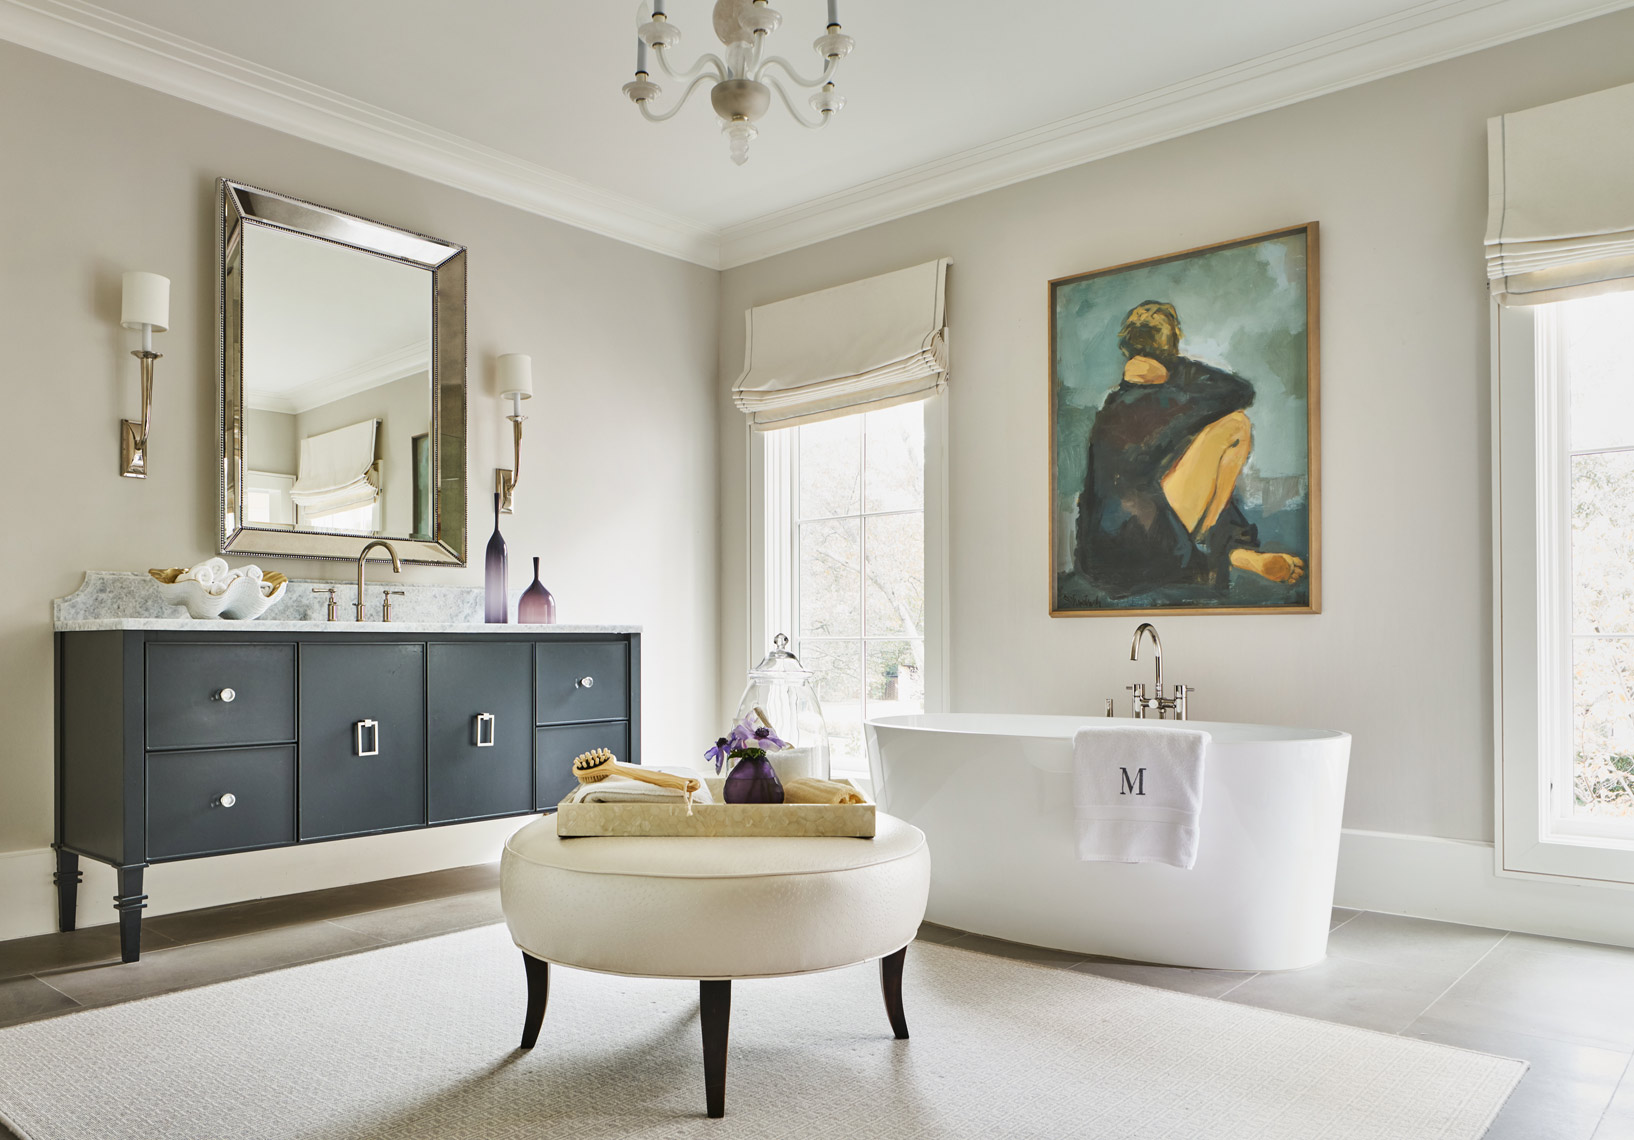 Stephen Karlisch Musgrove Bathroom